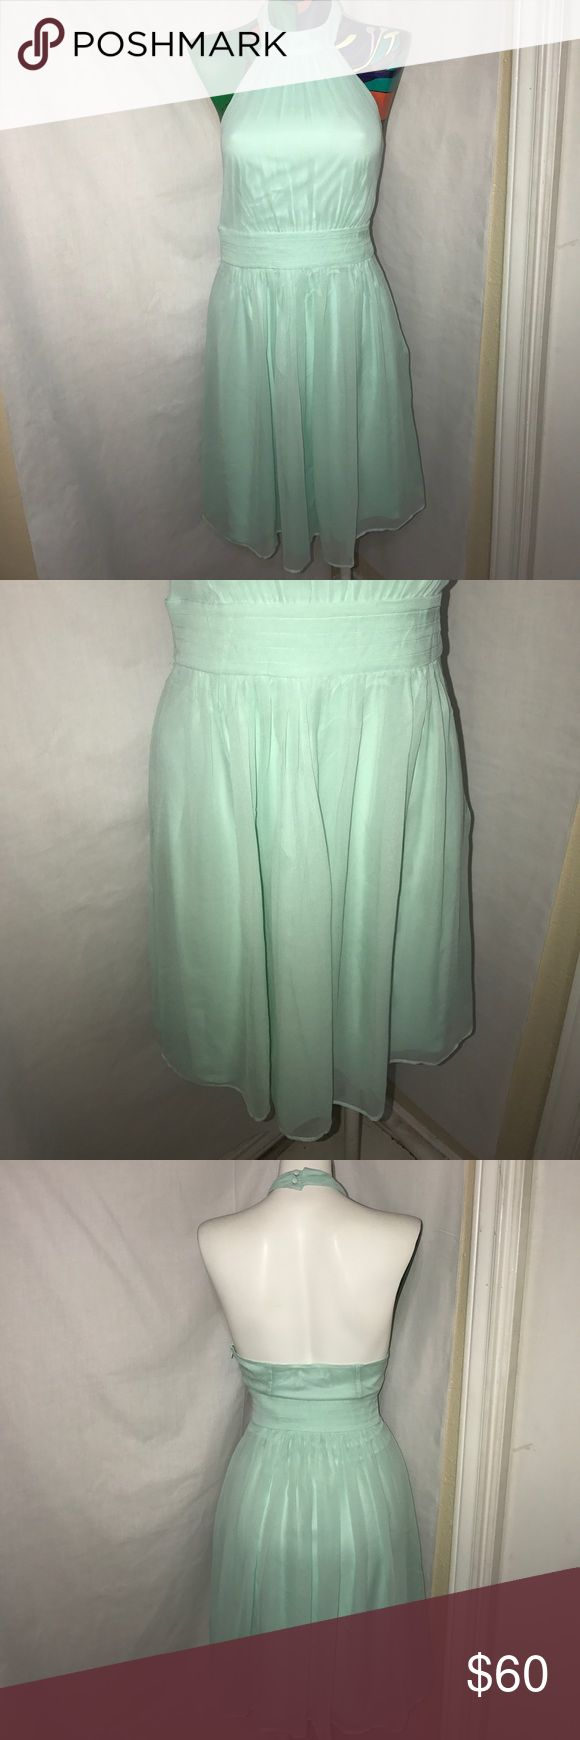 NWT Guess by Marciano S Beautiful mint green Guess by Marciano dress size S. This dress is a halter 100% silk dress. Guess by Marciano Dresses Mini